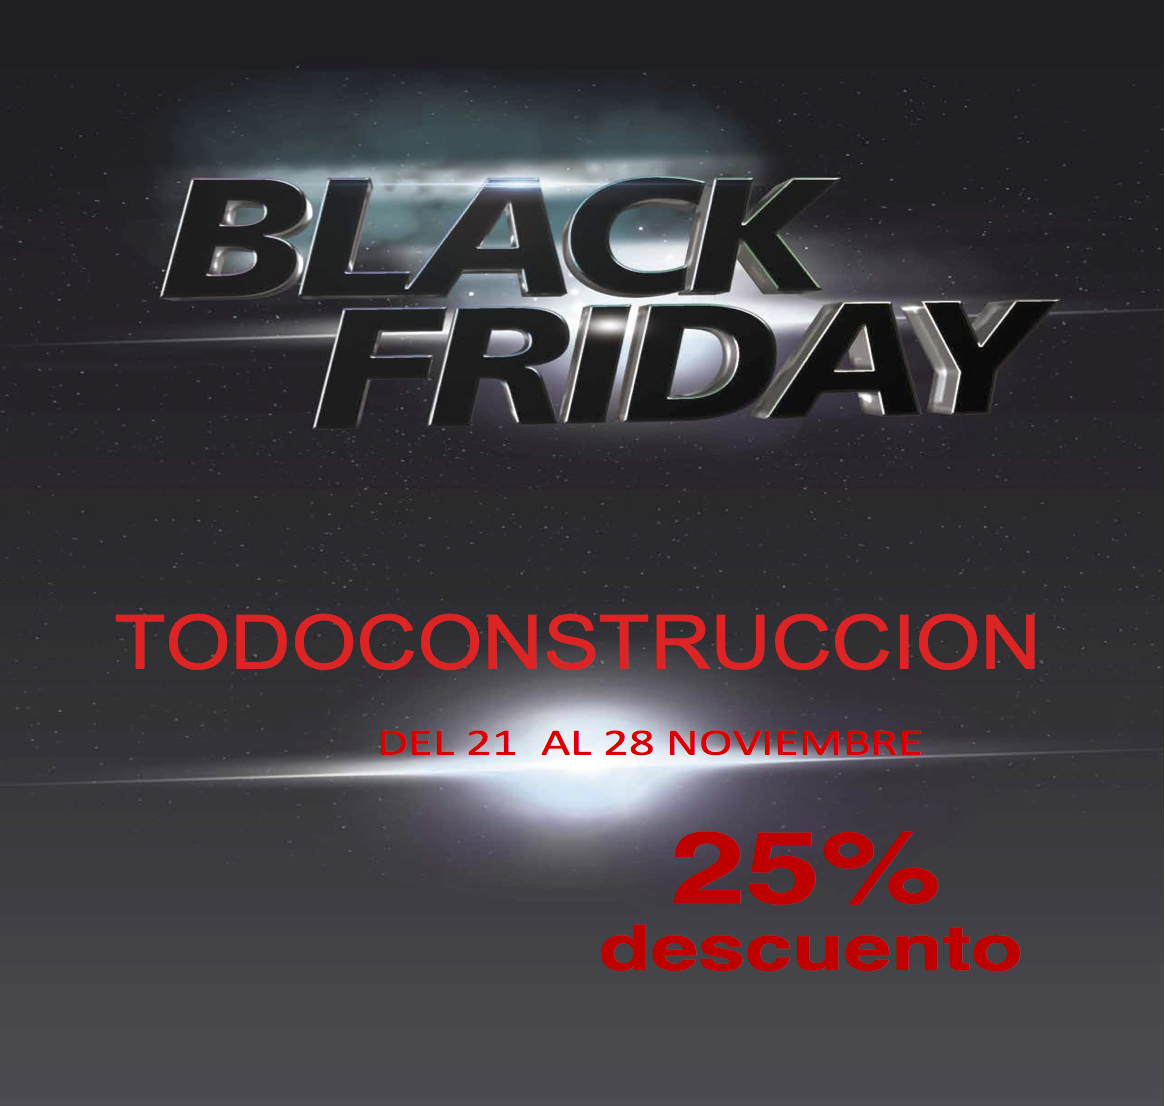 BLACK FRIDAY TODOCONSTRUCCION 2016